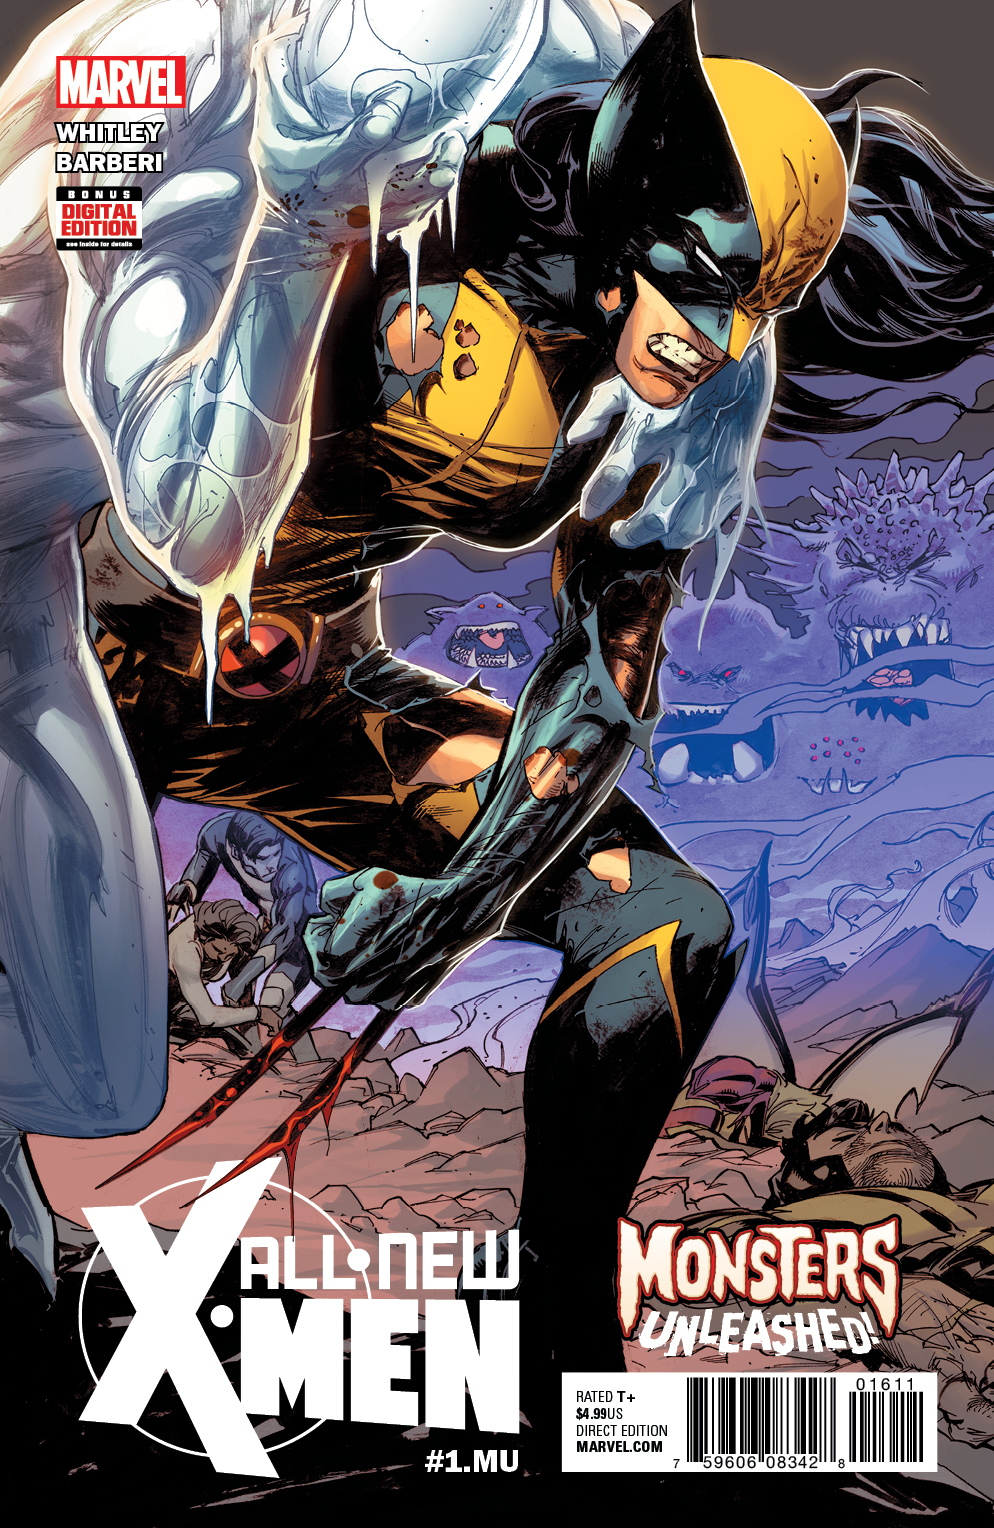 All-New_X-Men_1.MU_Cover.jpg